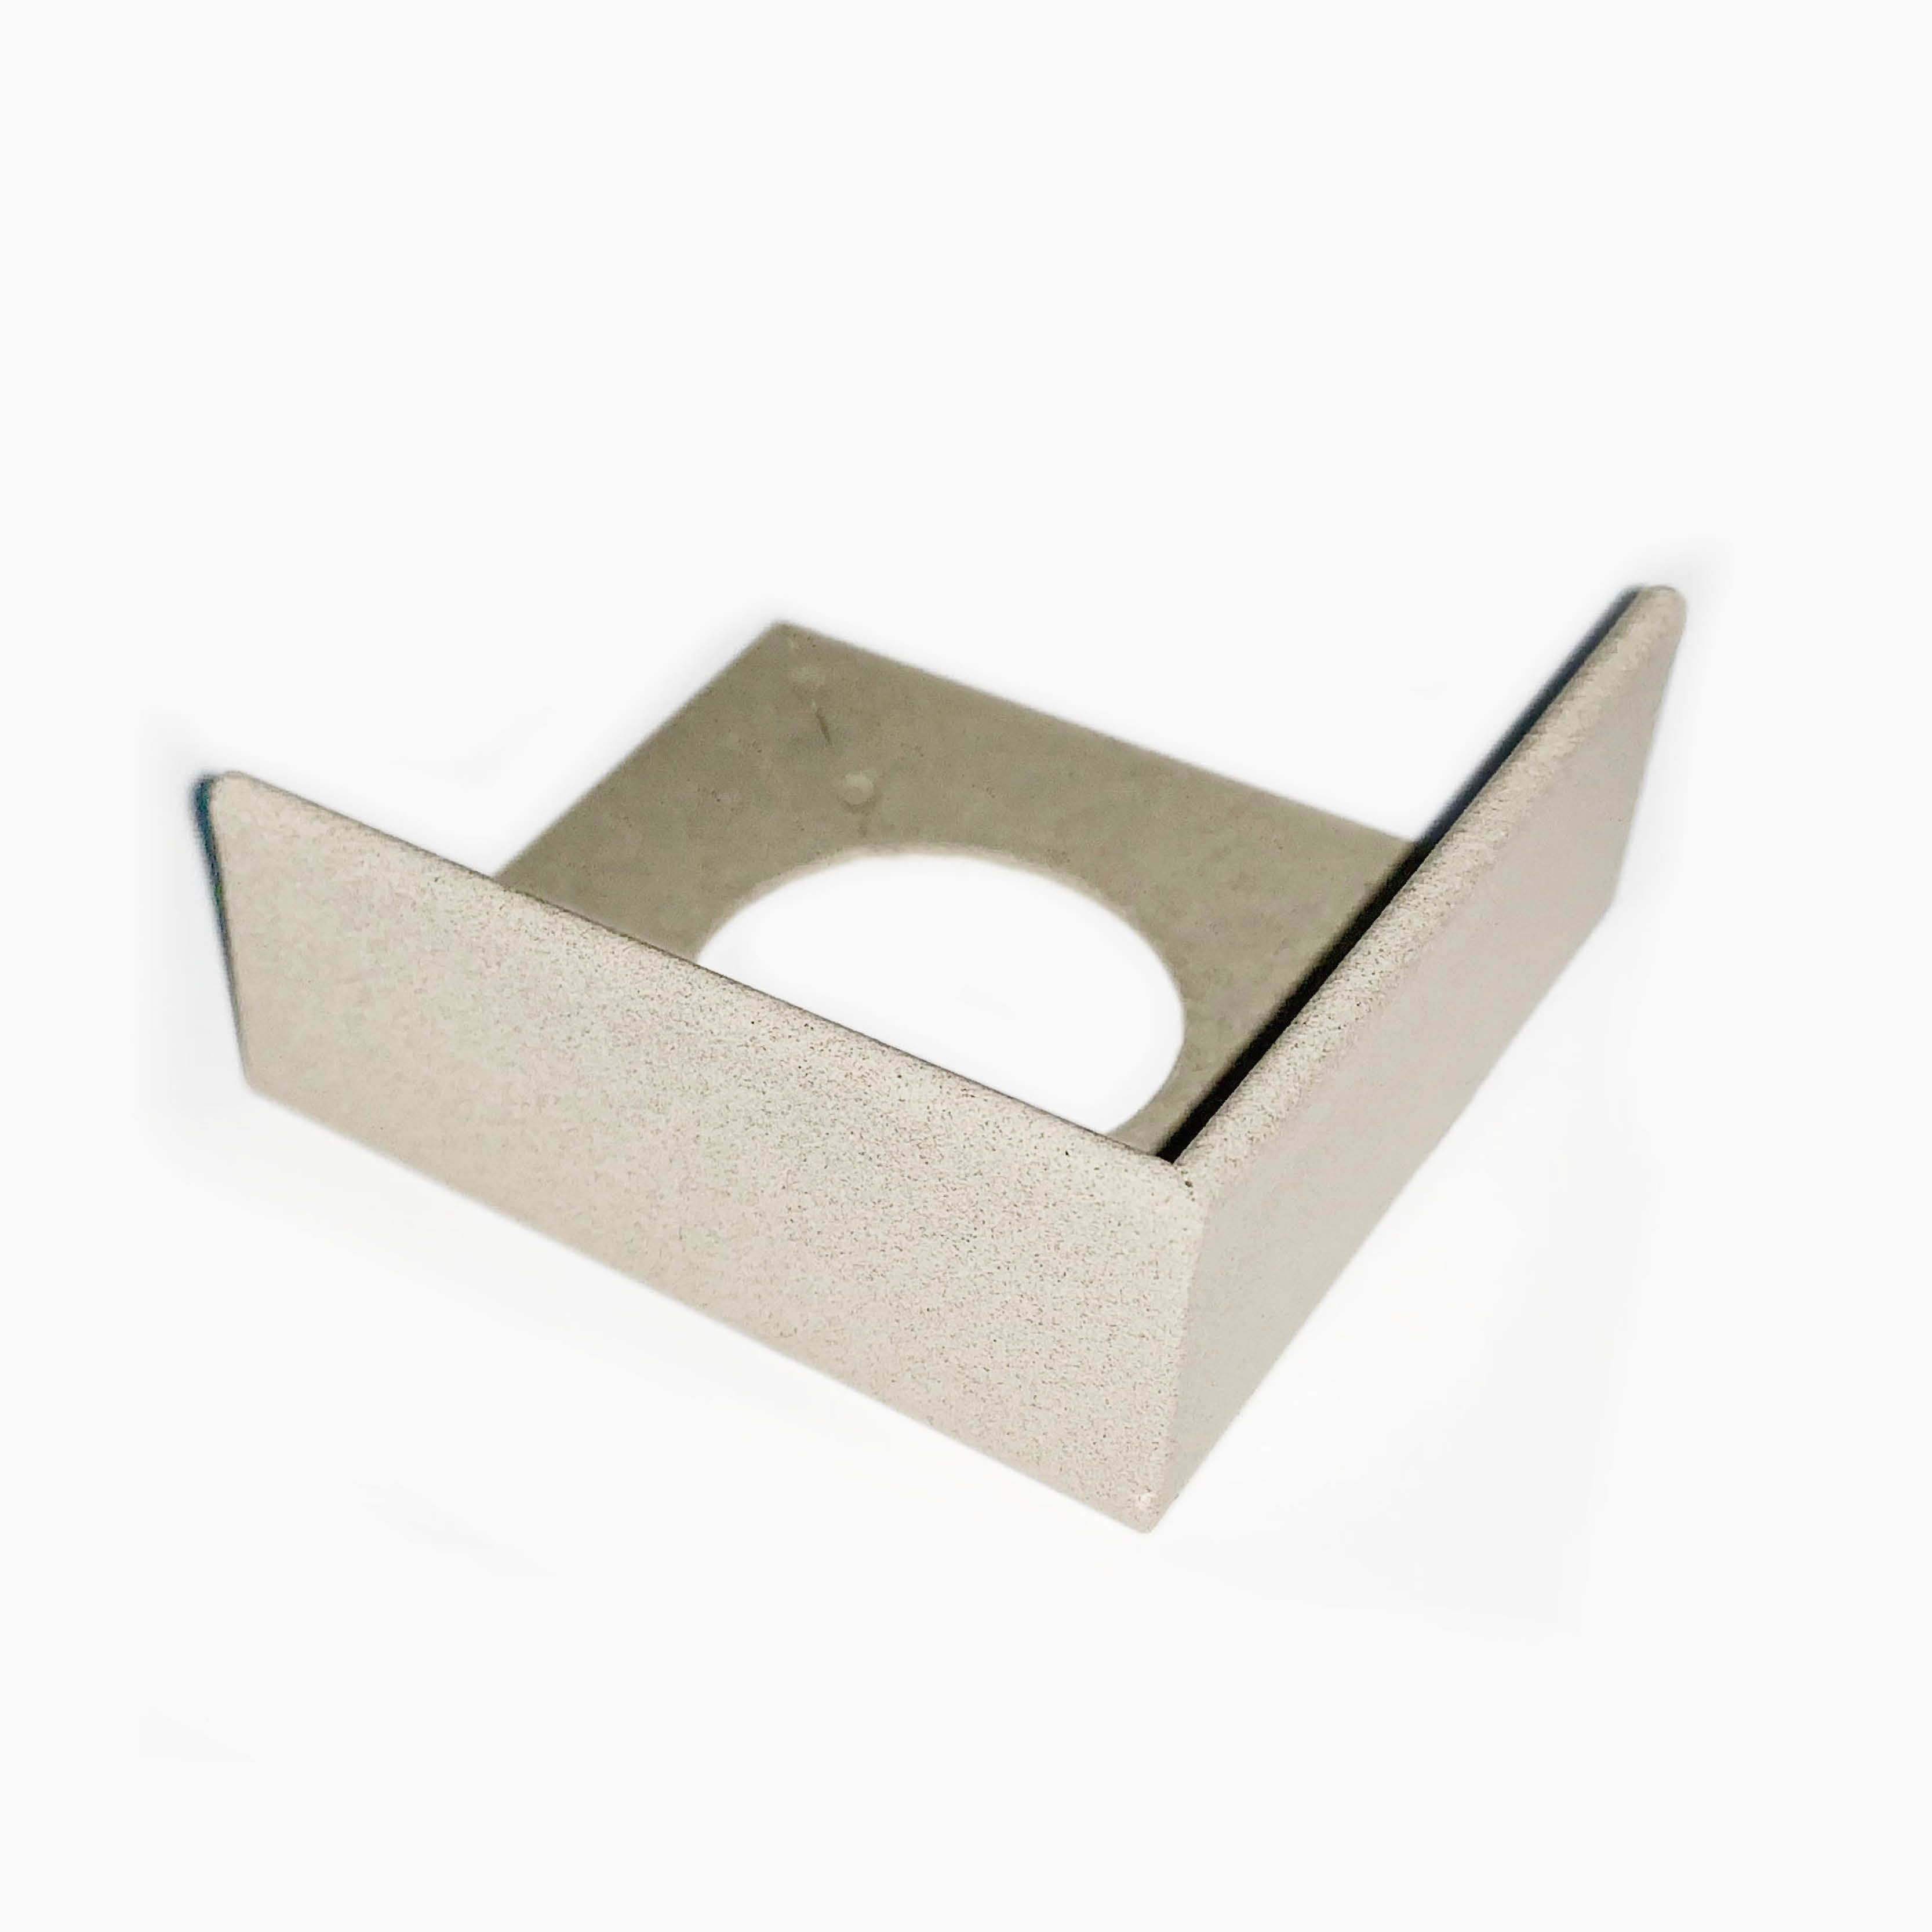 PorcelQuick Straight Edge Stainless Steel Profie Corner Piece - Beige Powder Coated